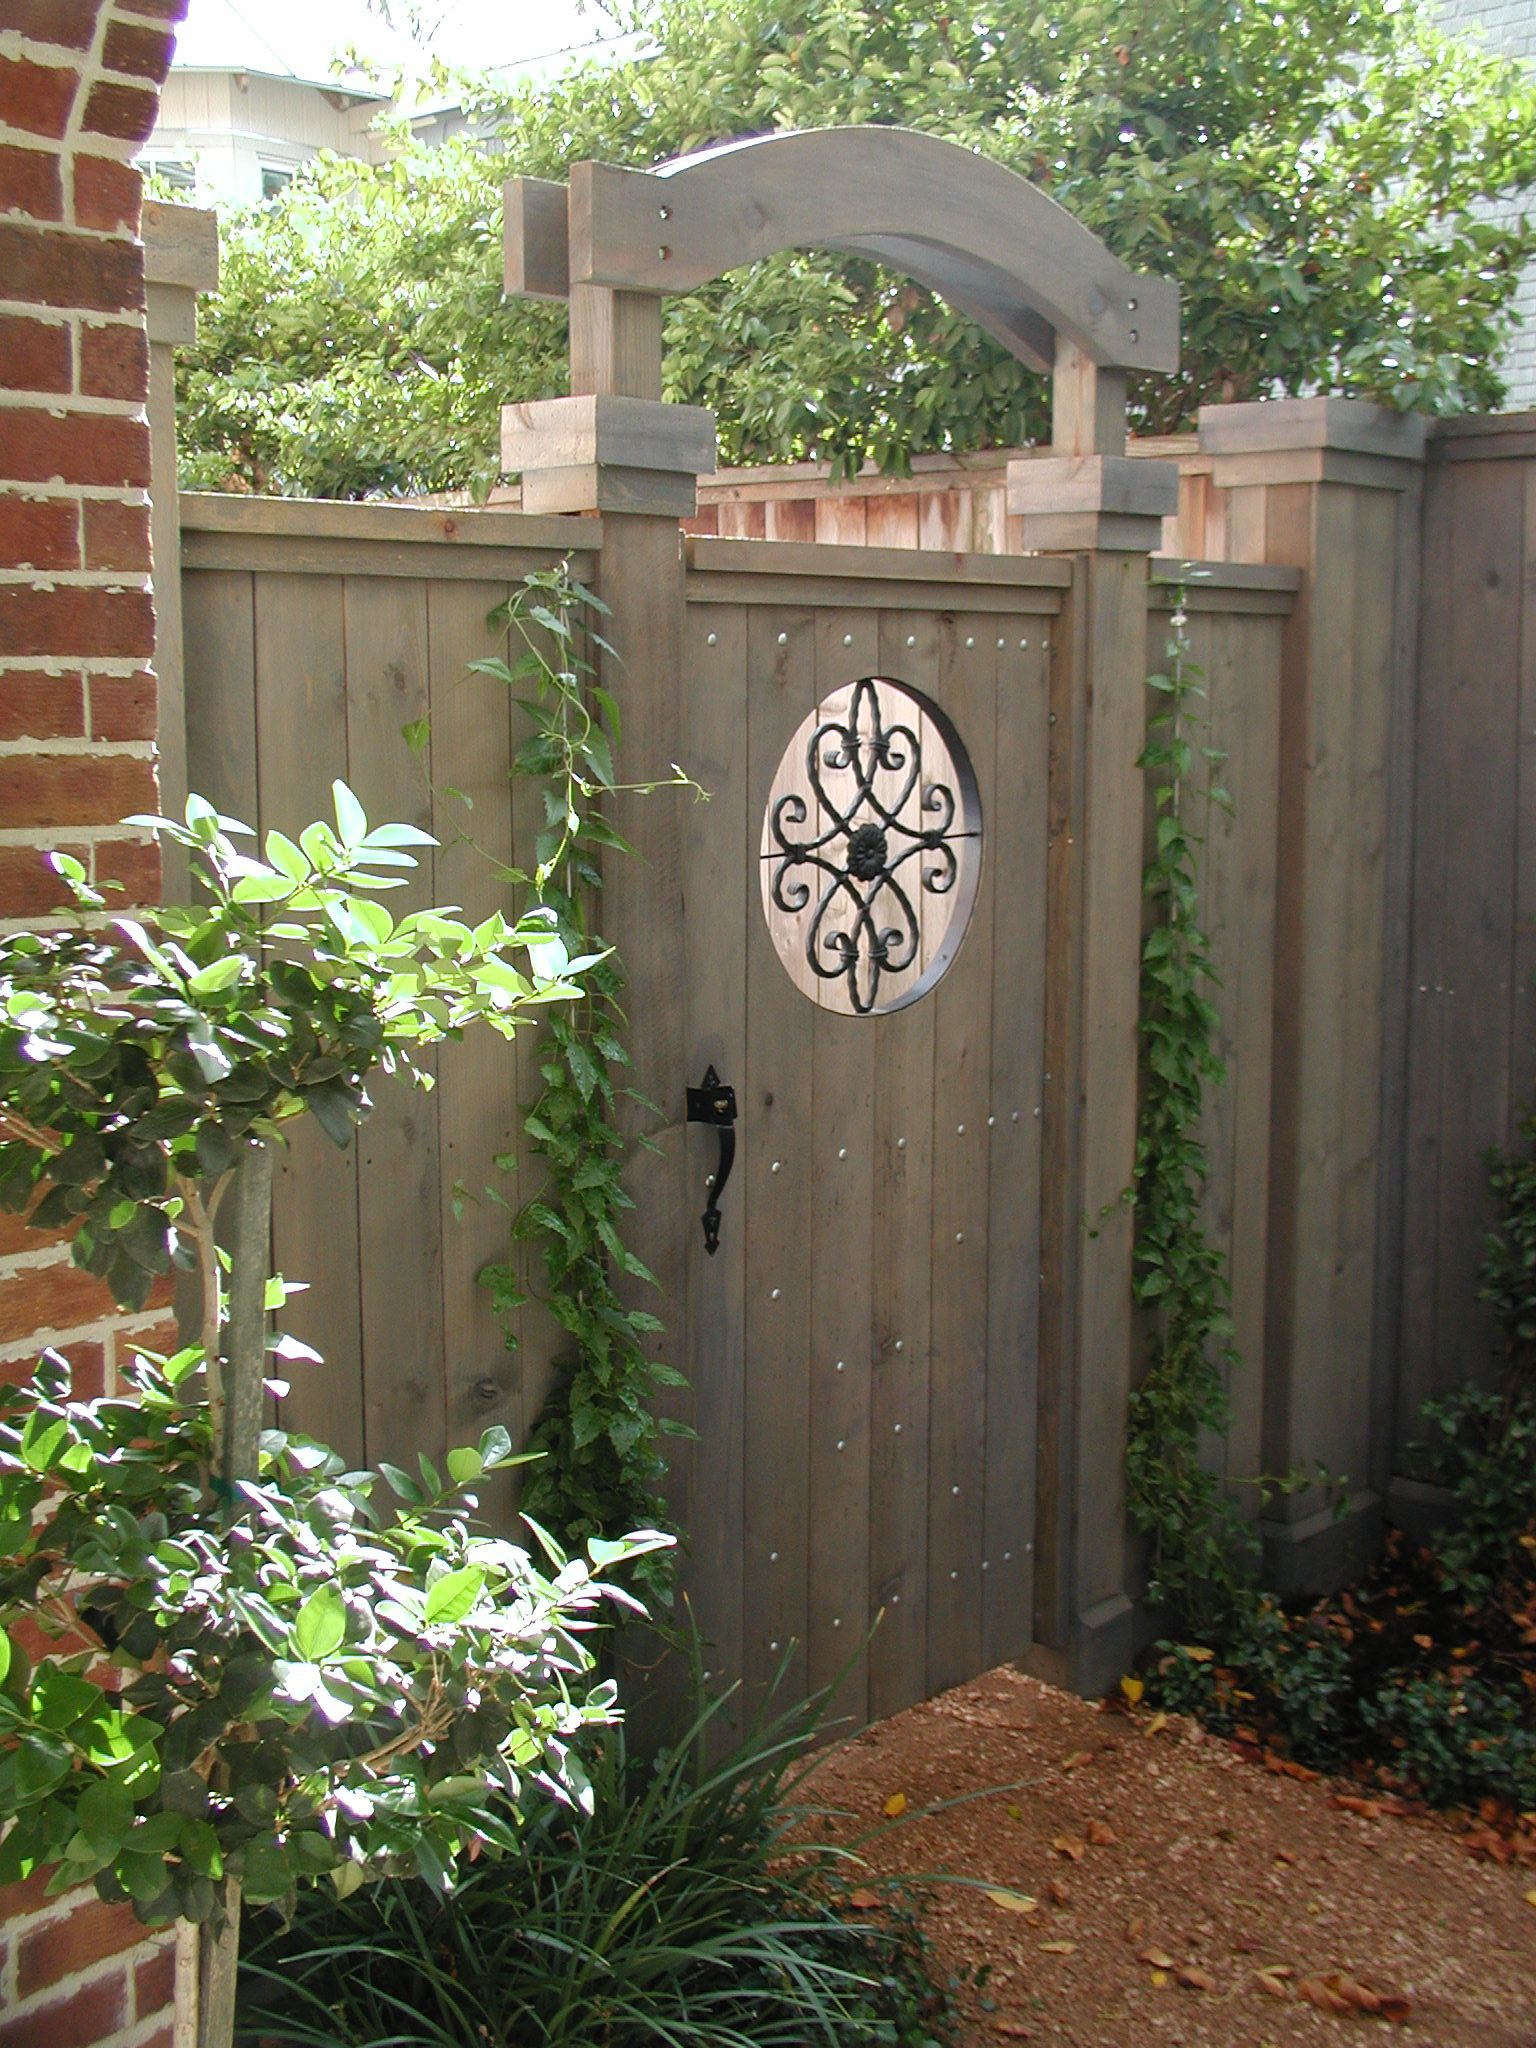 21 Great Garden Gate Ideas Wooden Garden Gate Garden Gate Design Small Garden Gates